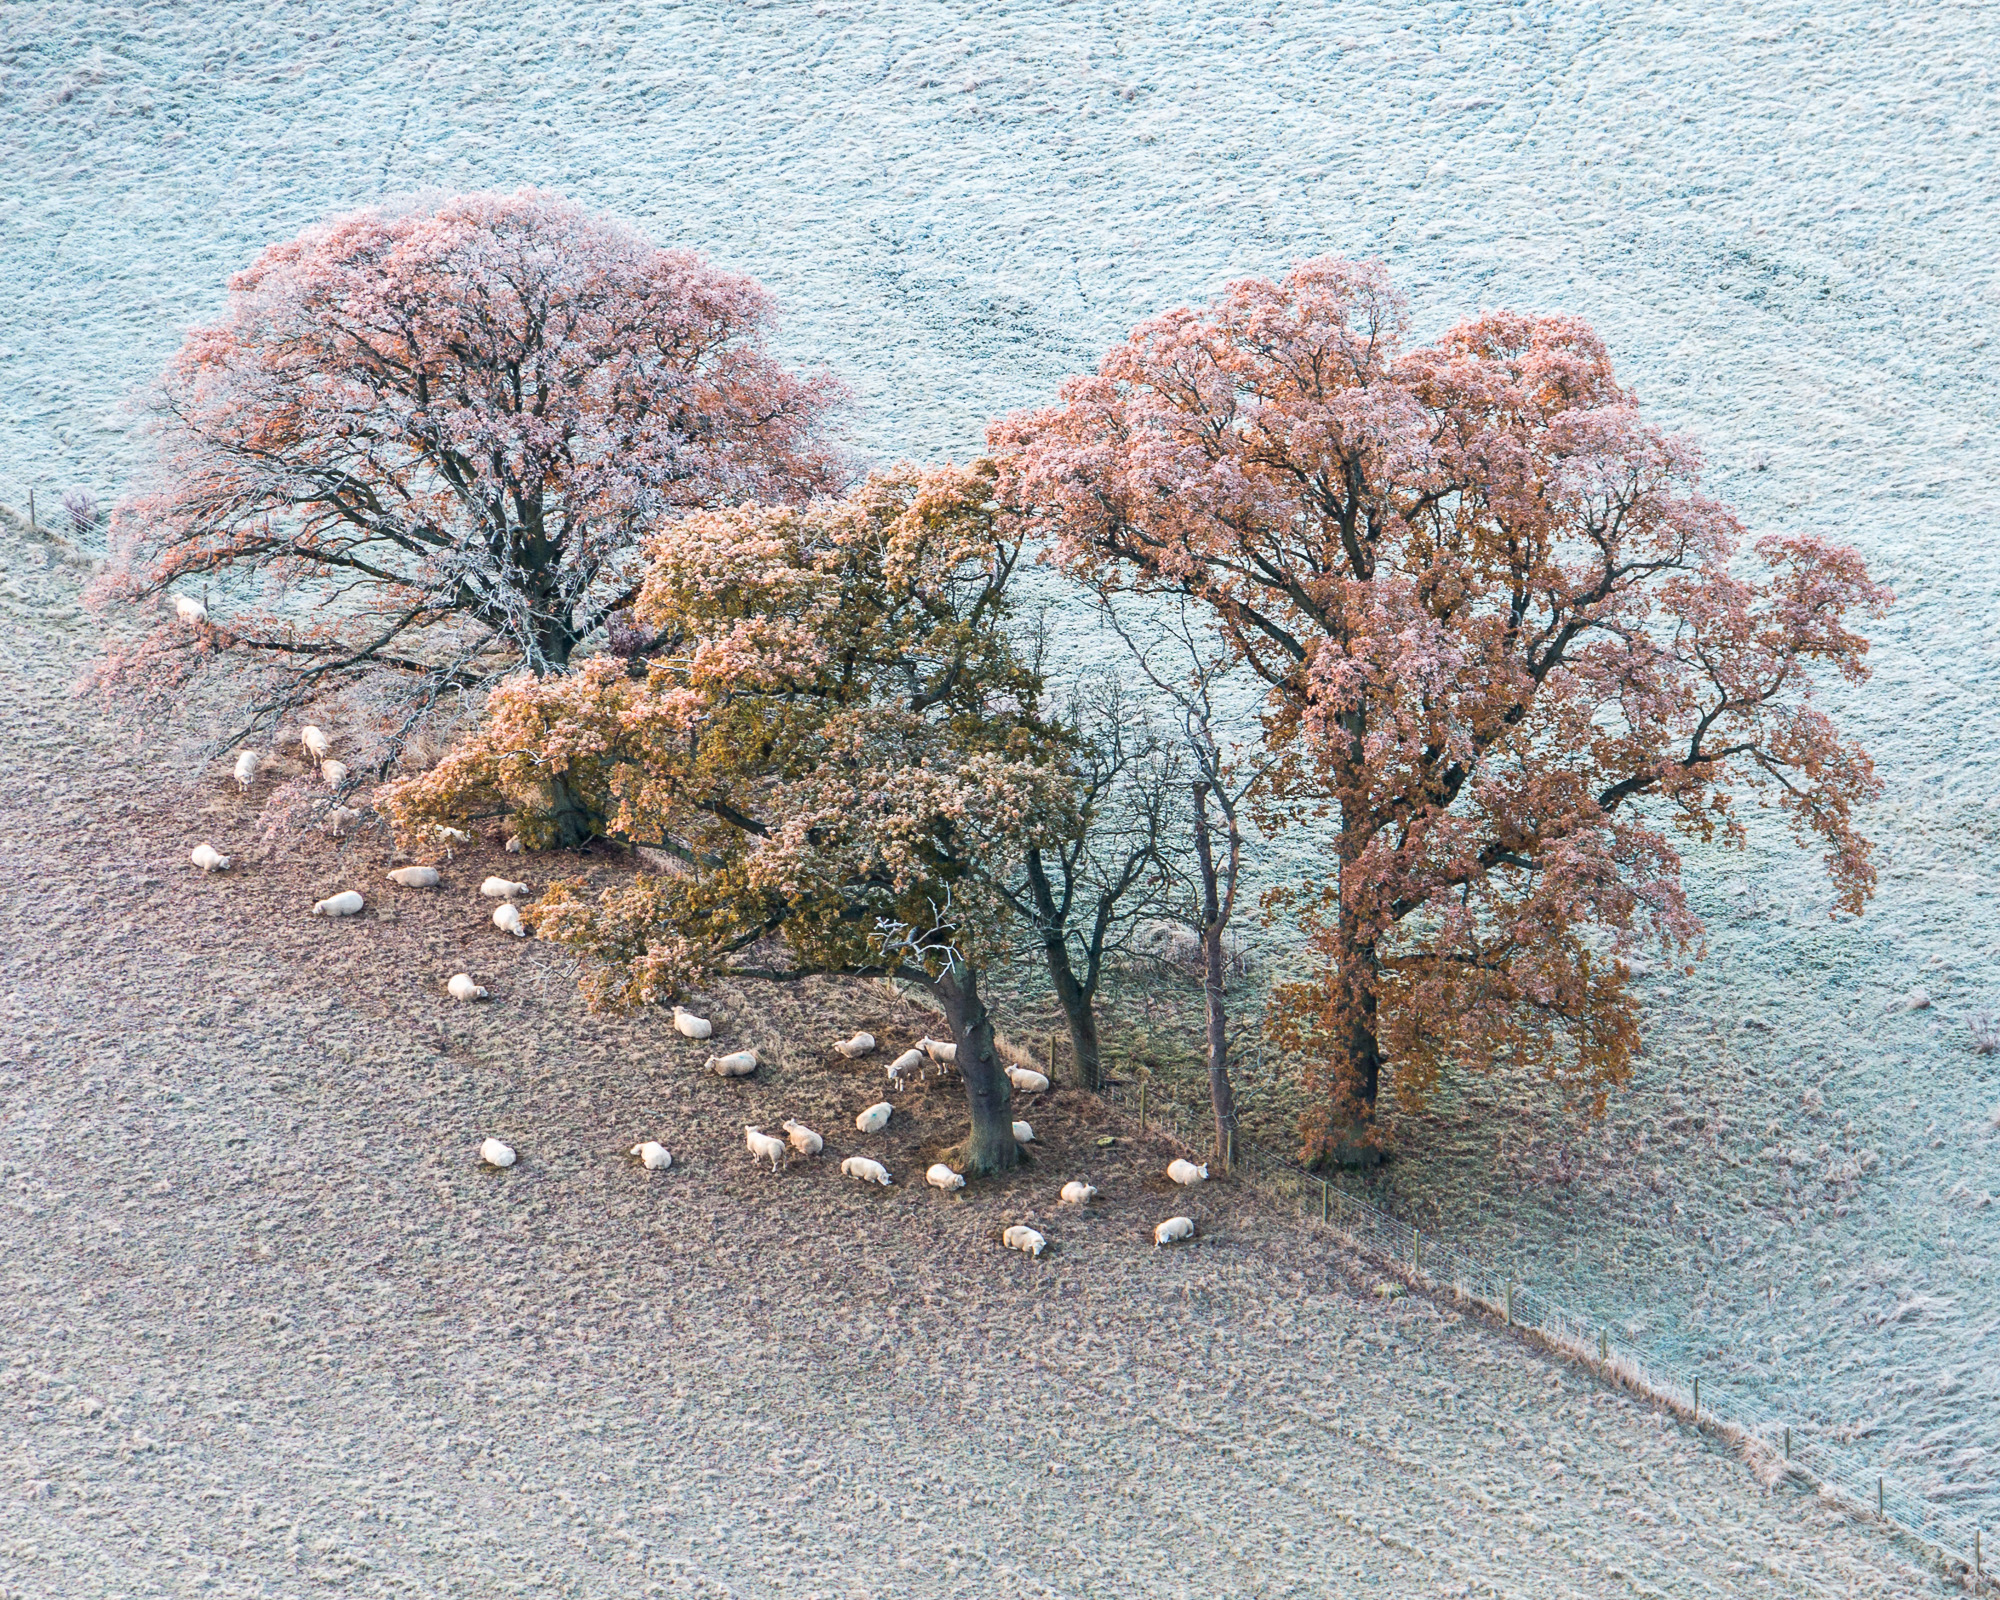 November frost below KInnoull hill, Scotland